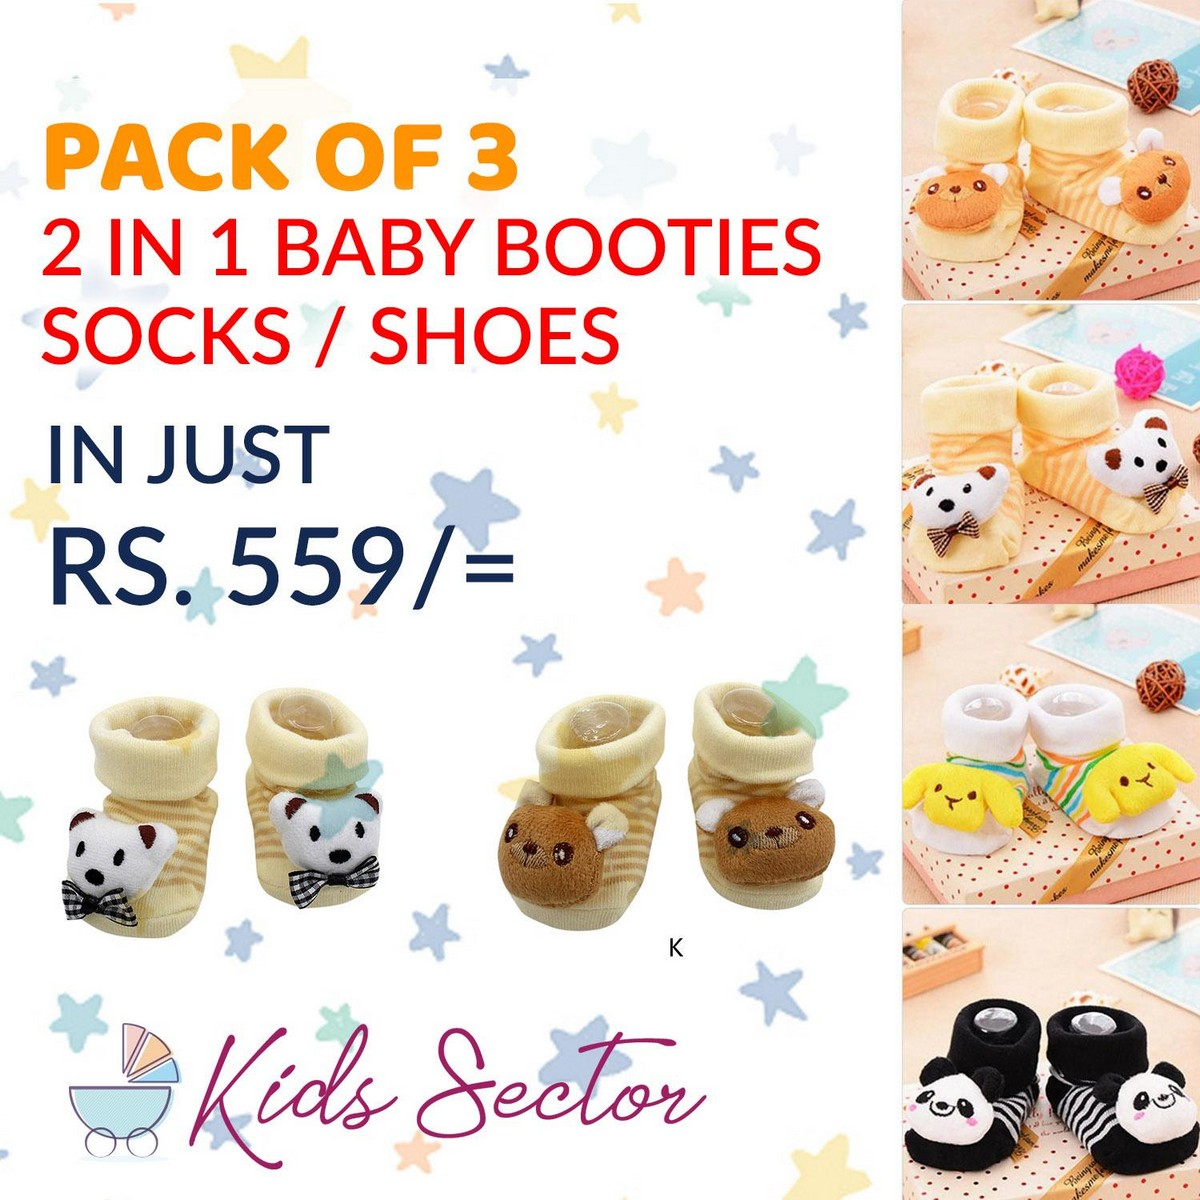 Pack of 3 - High Quality 2 in 1 Baby Socks Shoes - Kids Toddlers Booties 0 - 12 month